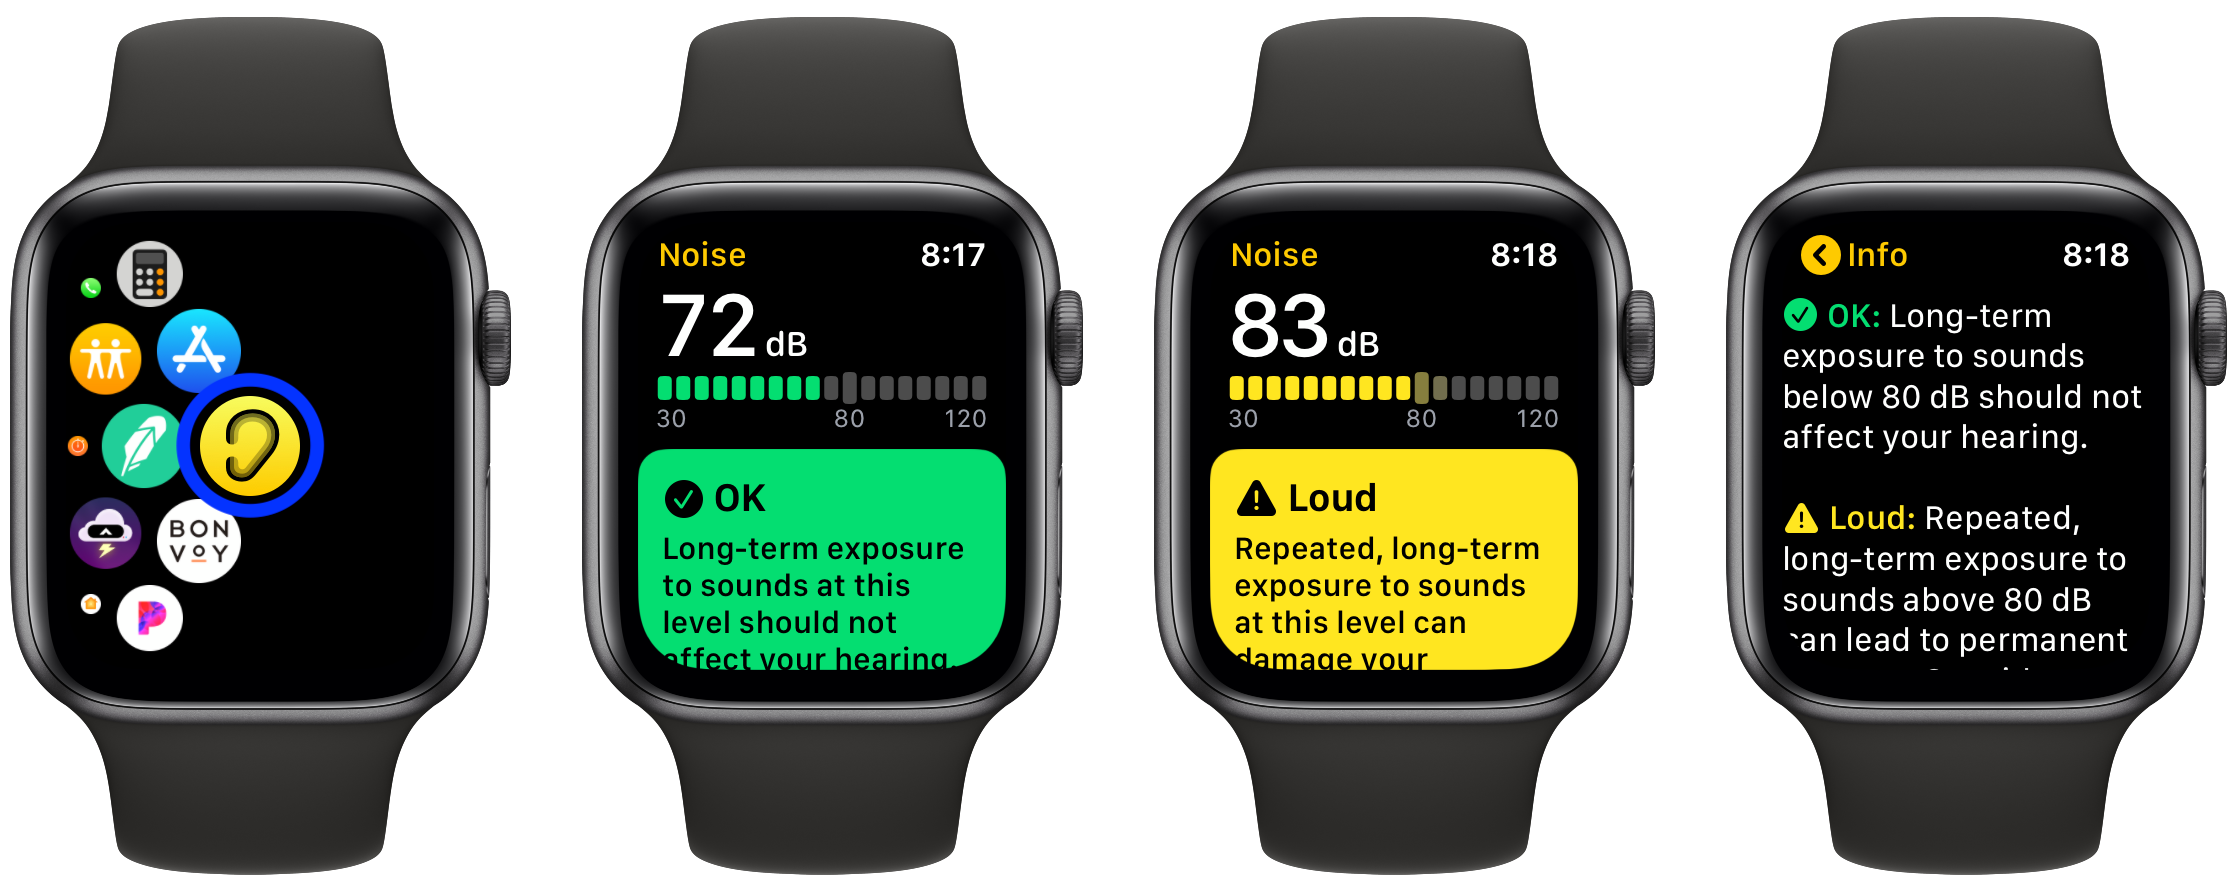 How to use noise app Apple Watch watchOS 6